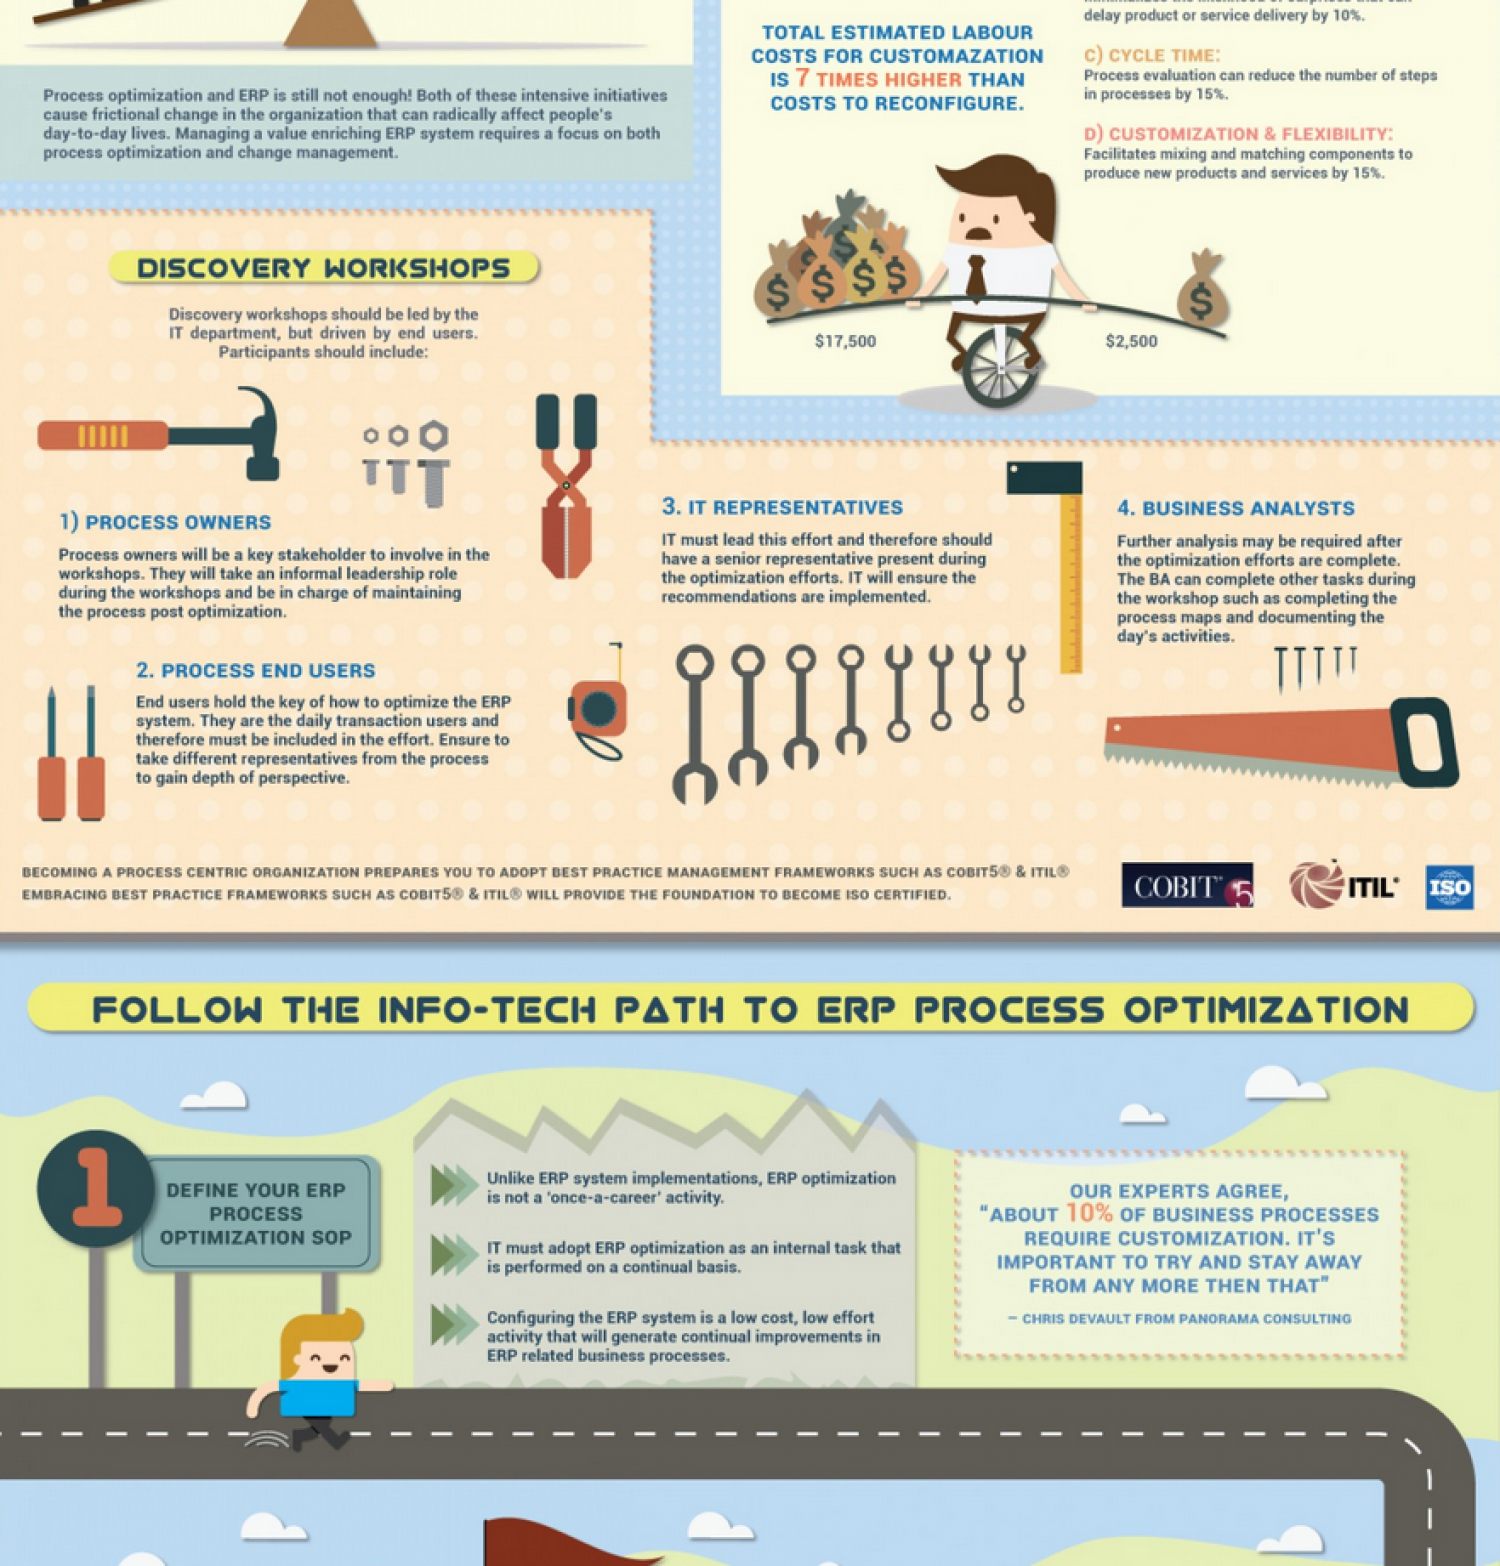 Optimize ERP Business Processes: Identify the best targets for process optimization and focus on configuration. Infographic